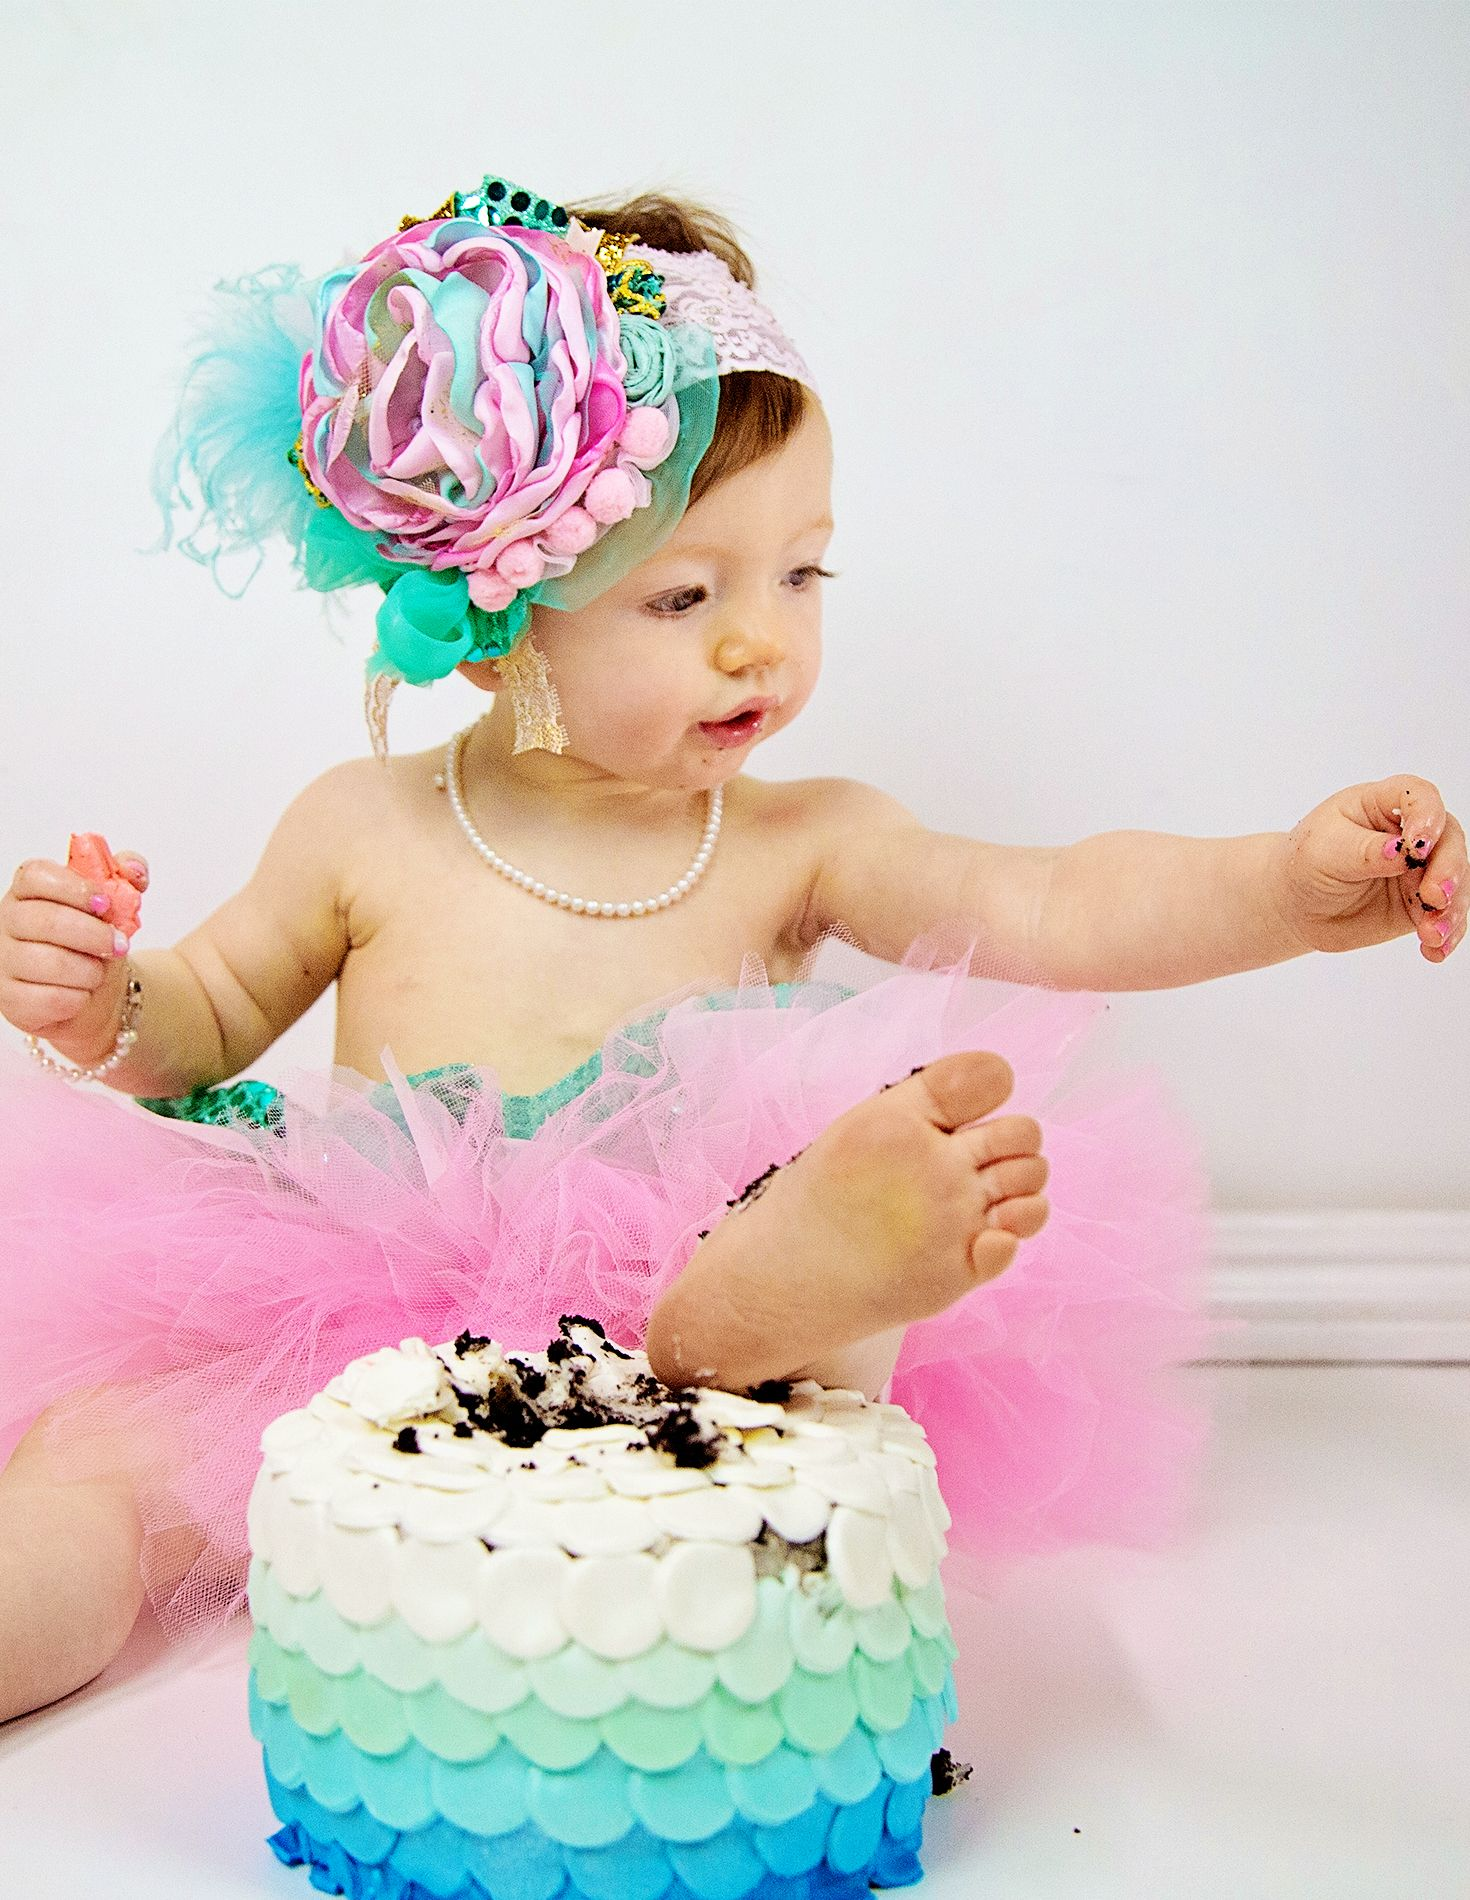 Mermaid smash cake first birthday photo session.  I love her real pearl necklace (all mermaids need pearls), under the sea ombre cake, her pink & green tulle tutu and her amazing baby flower headband!  So cute!   Take a peek at all of our fun first birthday smash cake photo props from Little Girl's Pearls! ♥